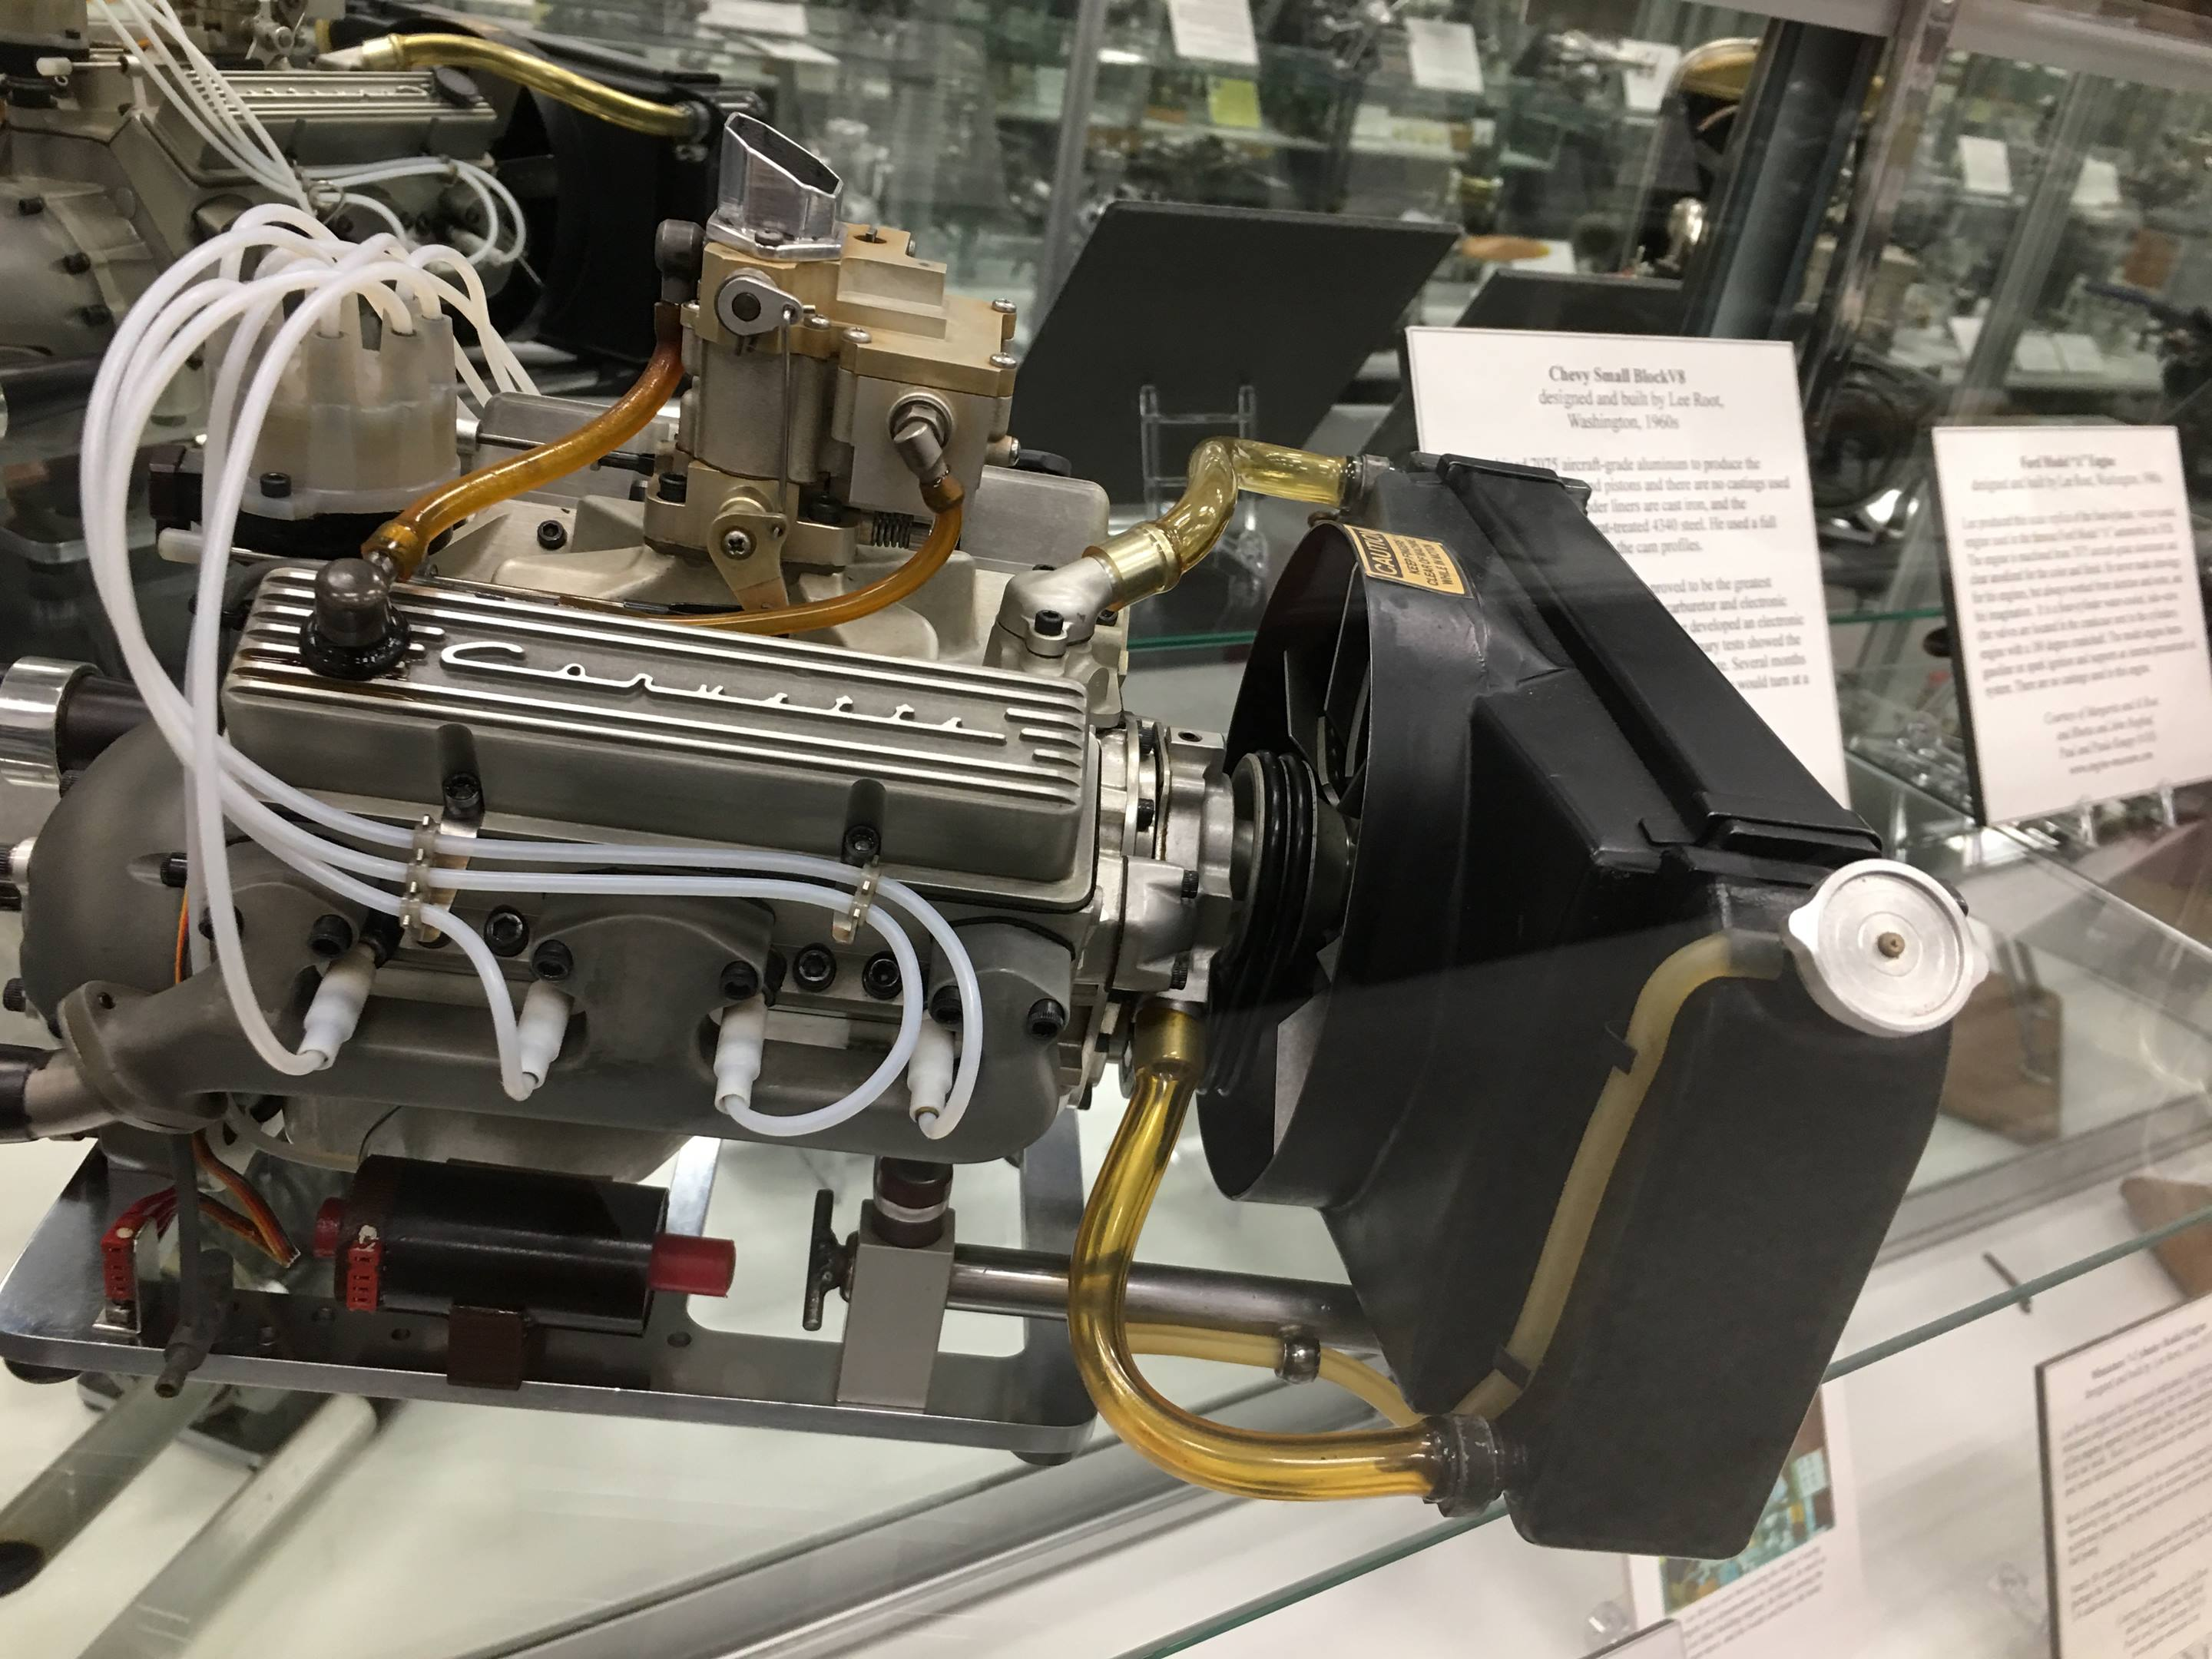 Builder Lee Root machined 7075 aircraft-grade aluminum to make the crankcase, heads, rods, and pistons of this scale Corvette engine. Iron liners and a heat-treated steel crankshaft and cam with lobes profiled after a real racing Corvette engine allow it to reach 10,000 rpm.